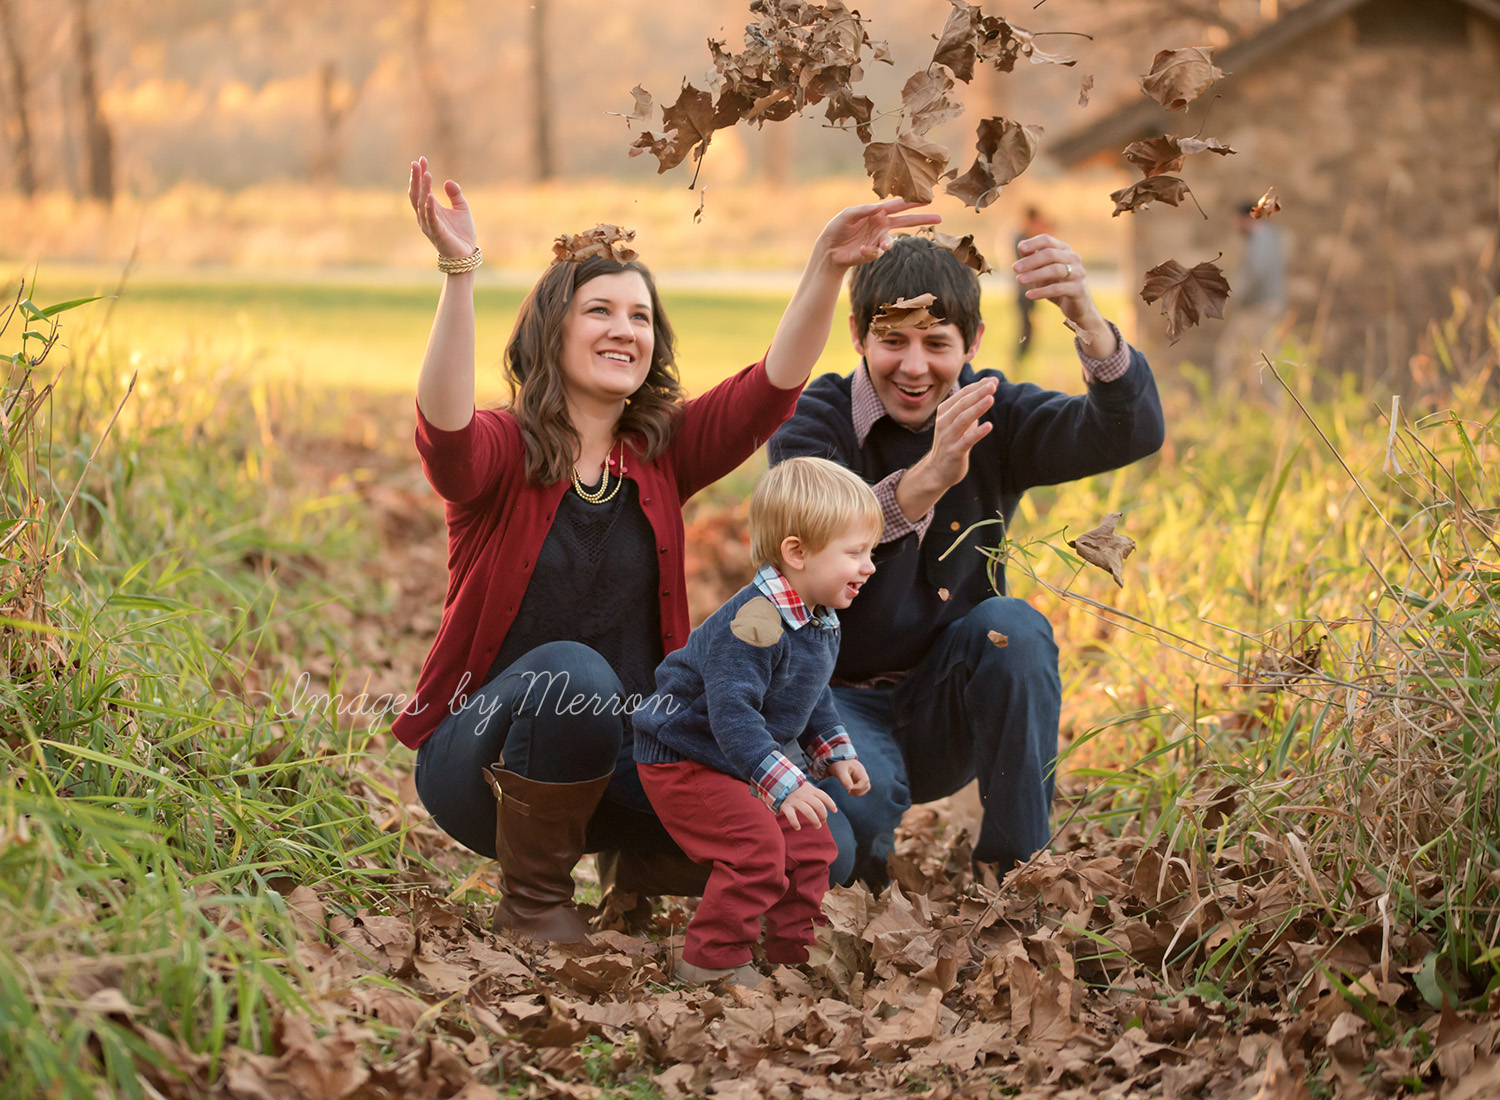 Ankeny Iowa family photographers. Fall photography in Iowa.